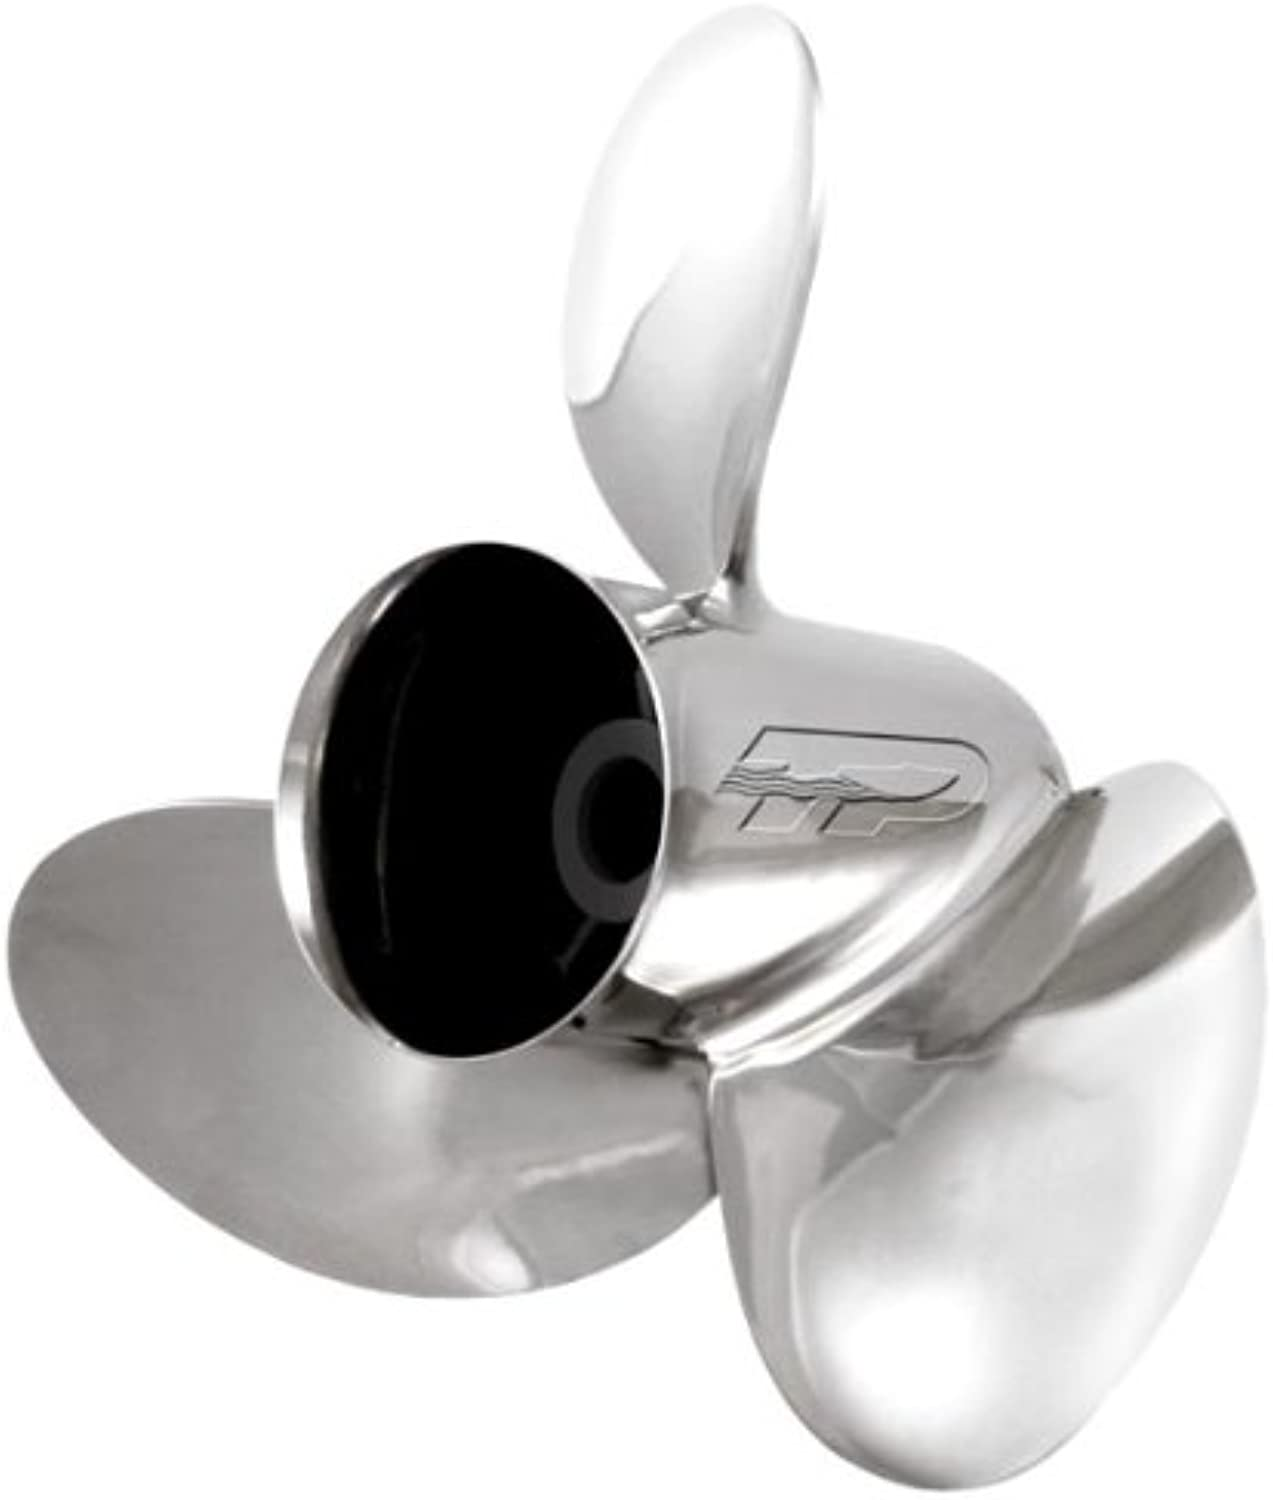 Turning Point Propellers VO1619L Marine Voyager Stainless Steel 3 Blade Left Propeller